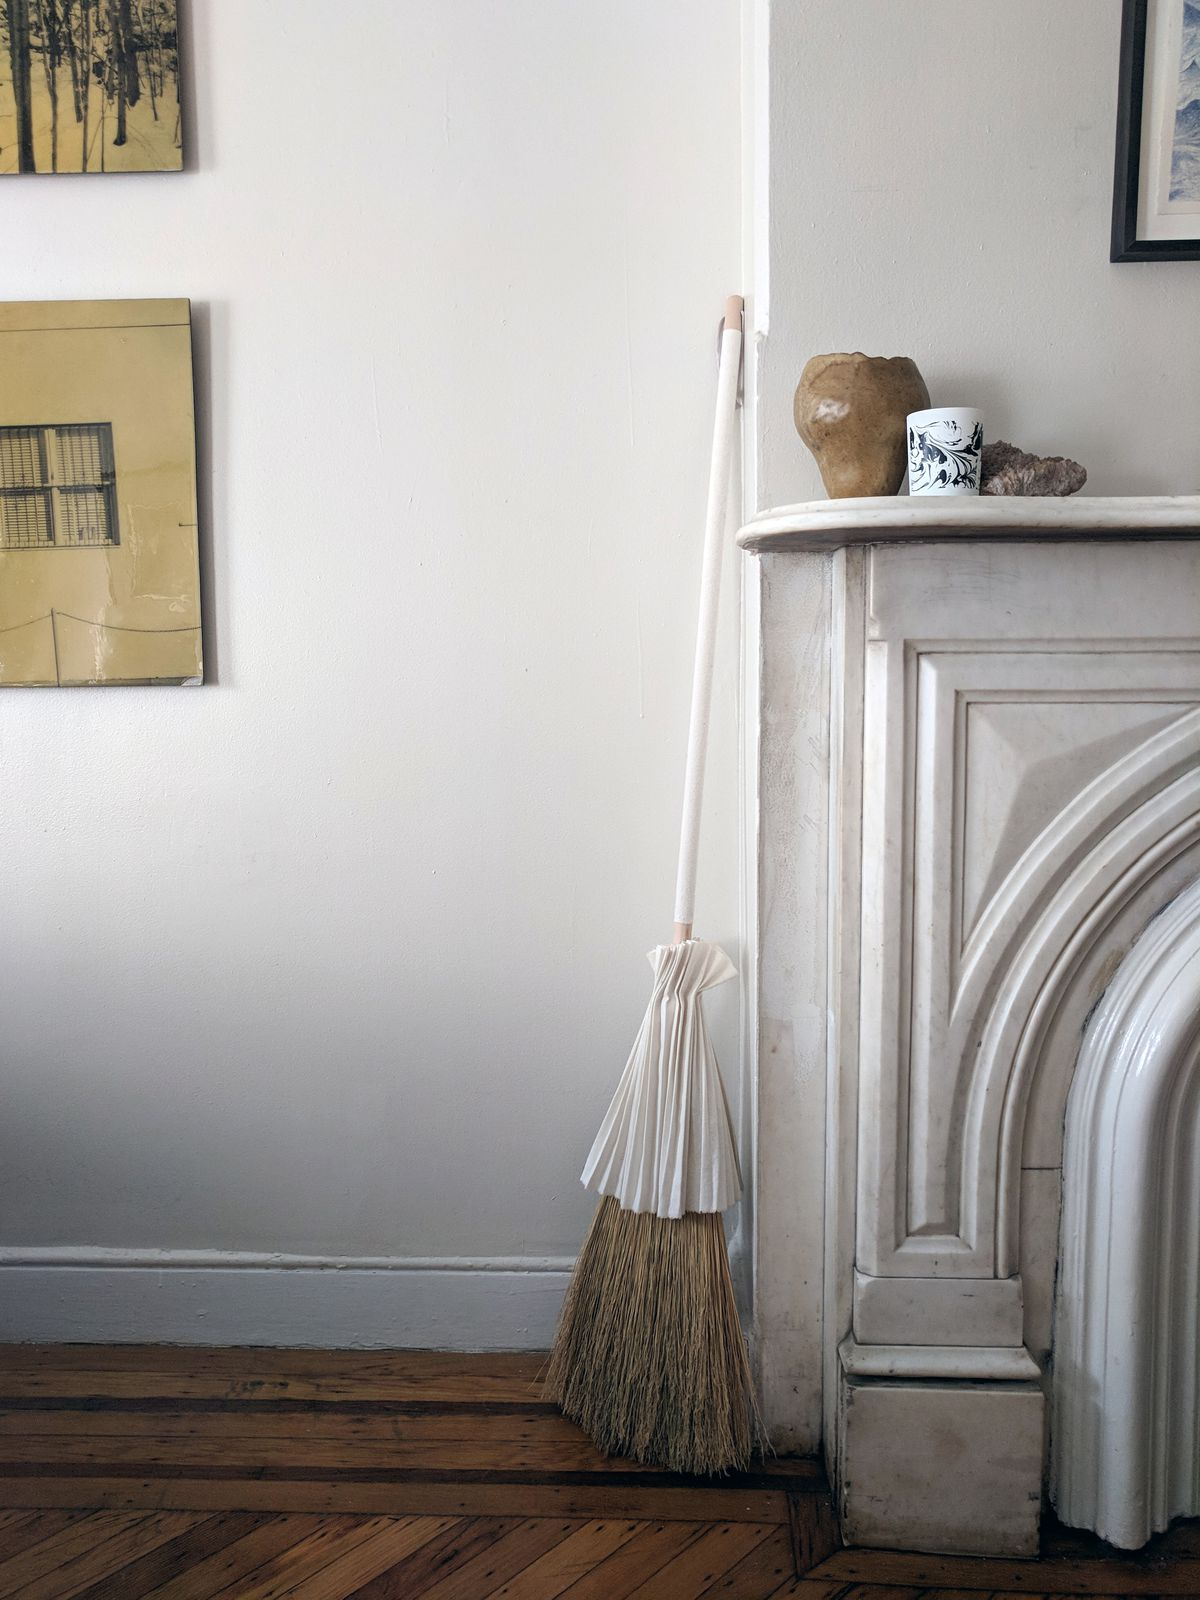 A broom with a skirt and sheath leans against a mantlepiece.